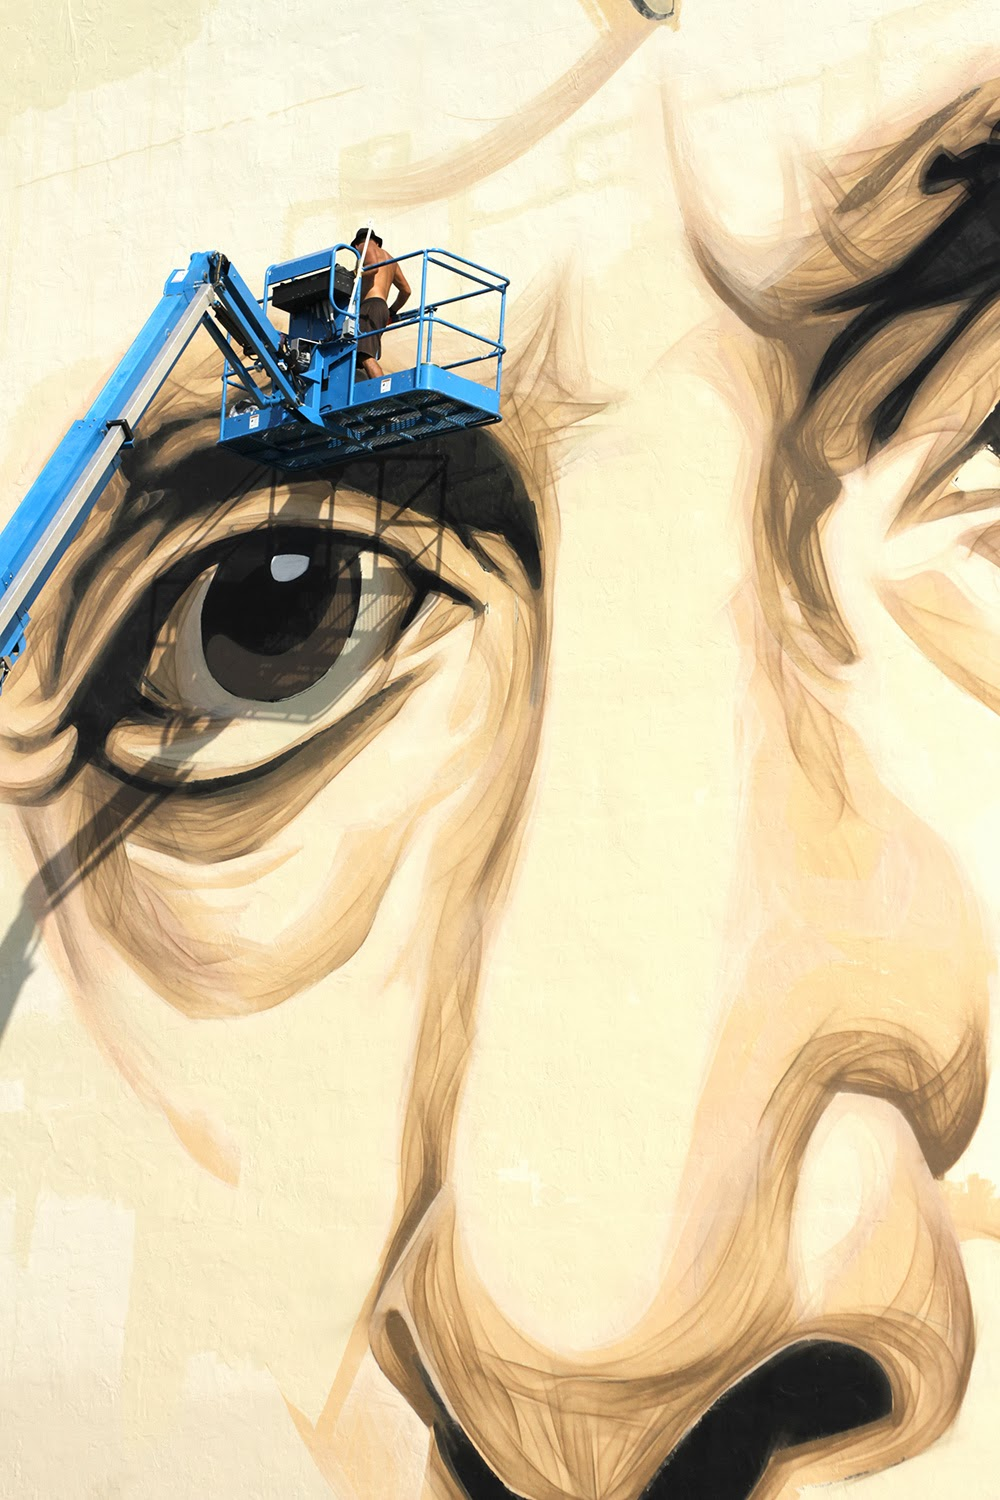 ino-in-heaven-with-you-new-mural-in-wynwood-miami-04